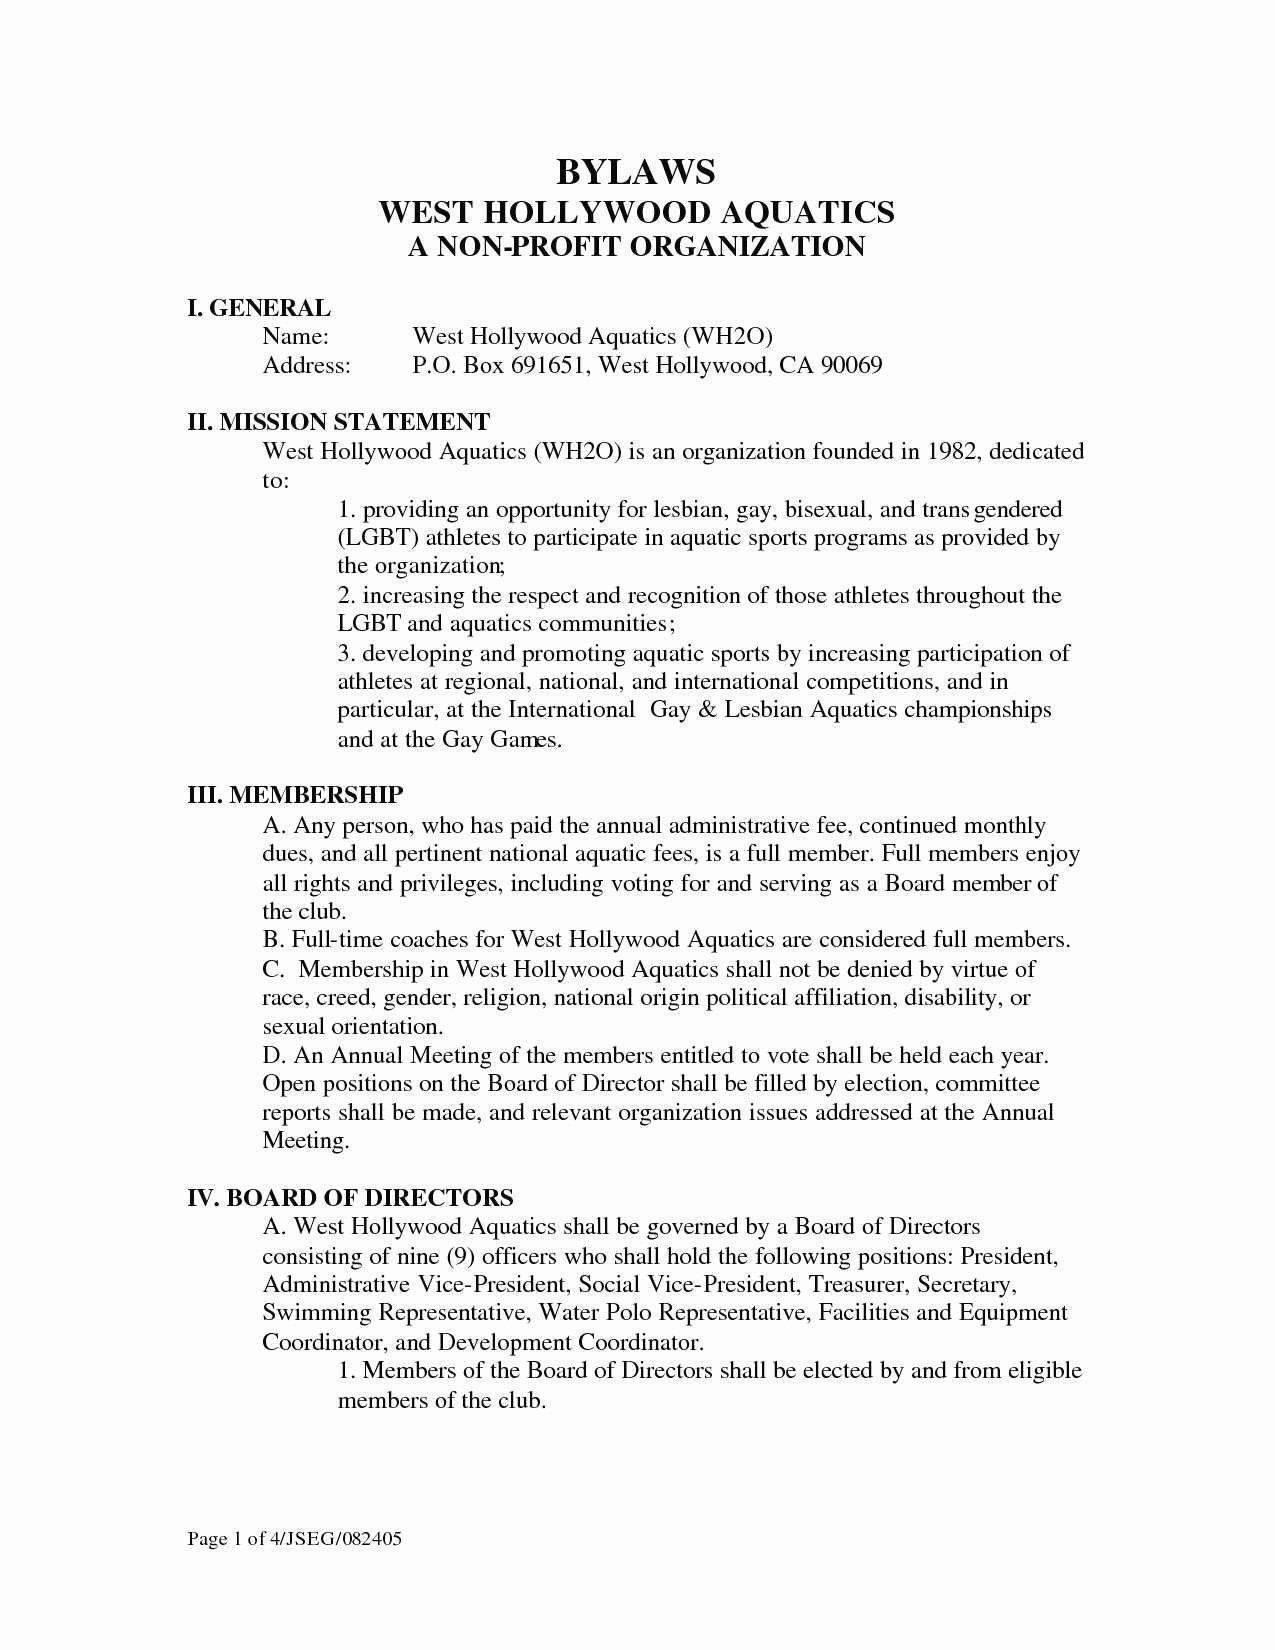 Social Club bylaws Template Inspirational Unique Non Profit bylaws Template Massachusetts